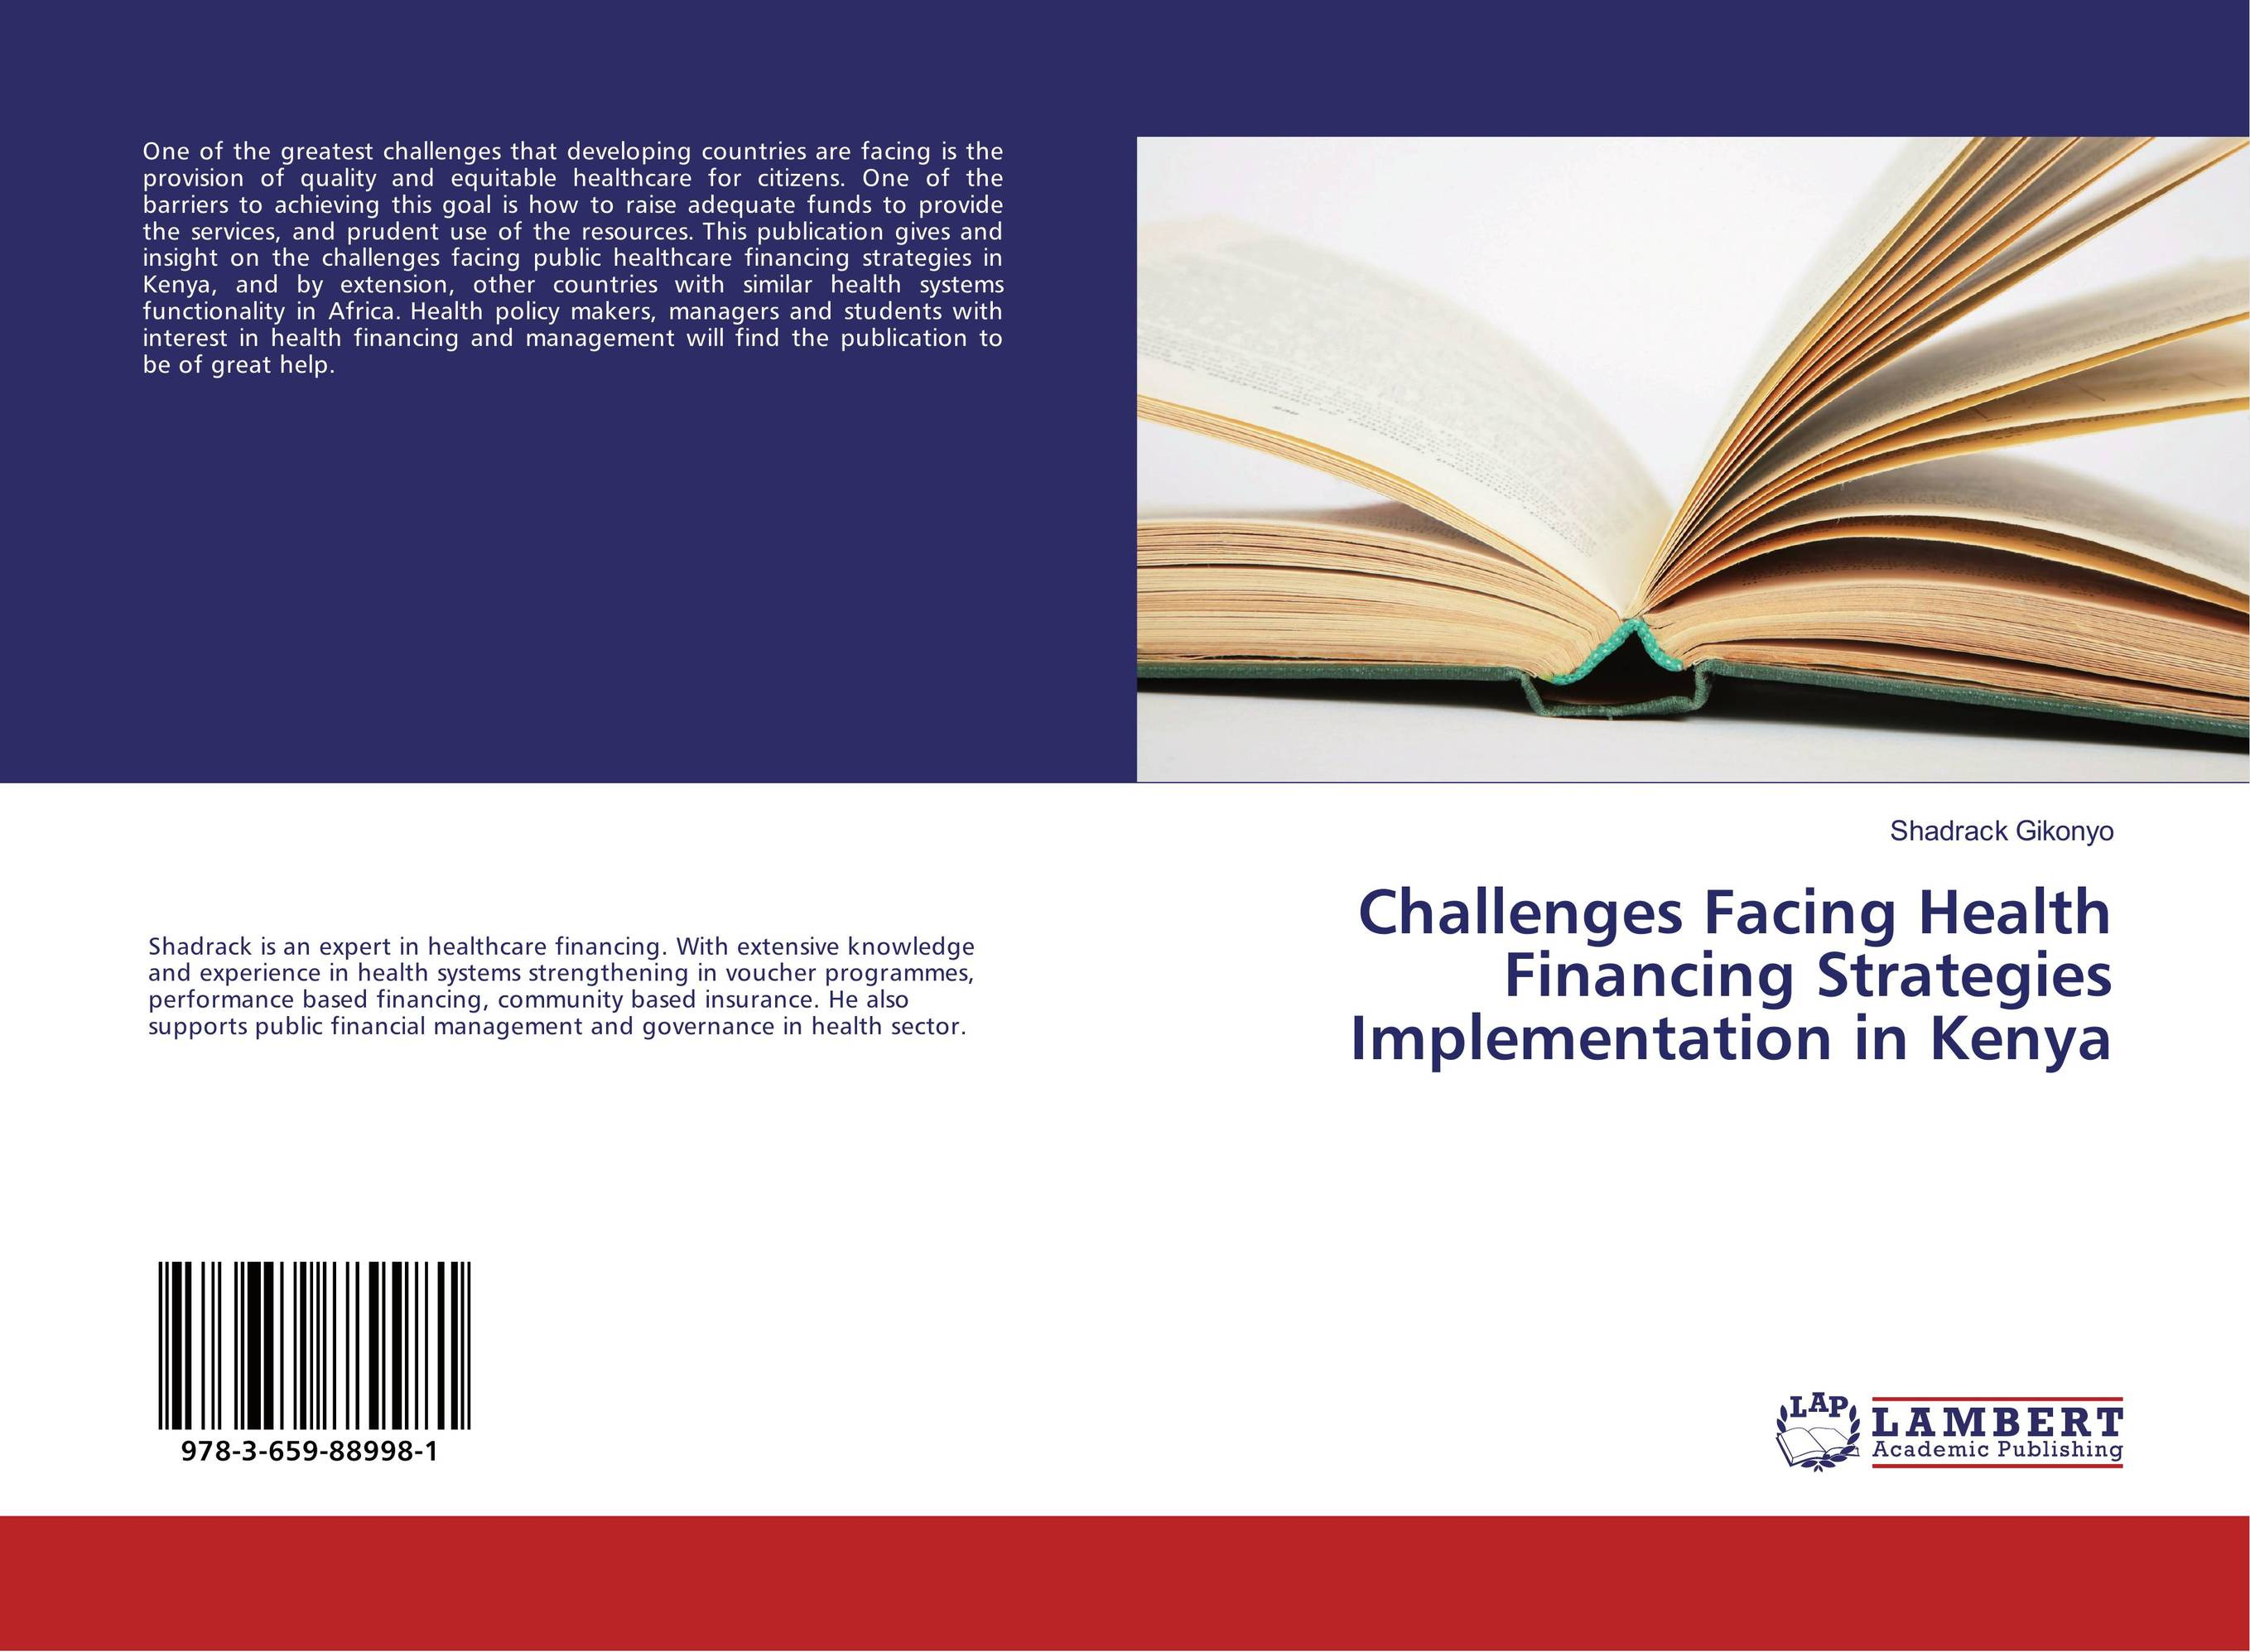 Challenges Facing Health Financing Strategies Implementation in Kenya point systems migration policy and international students flow